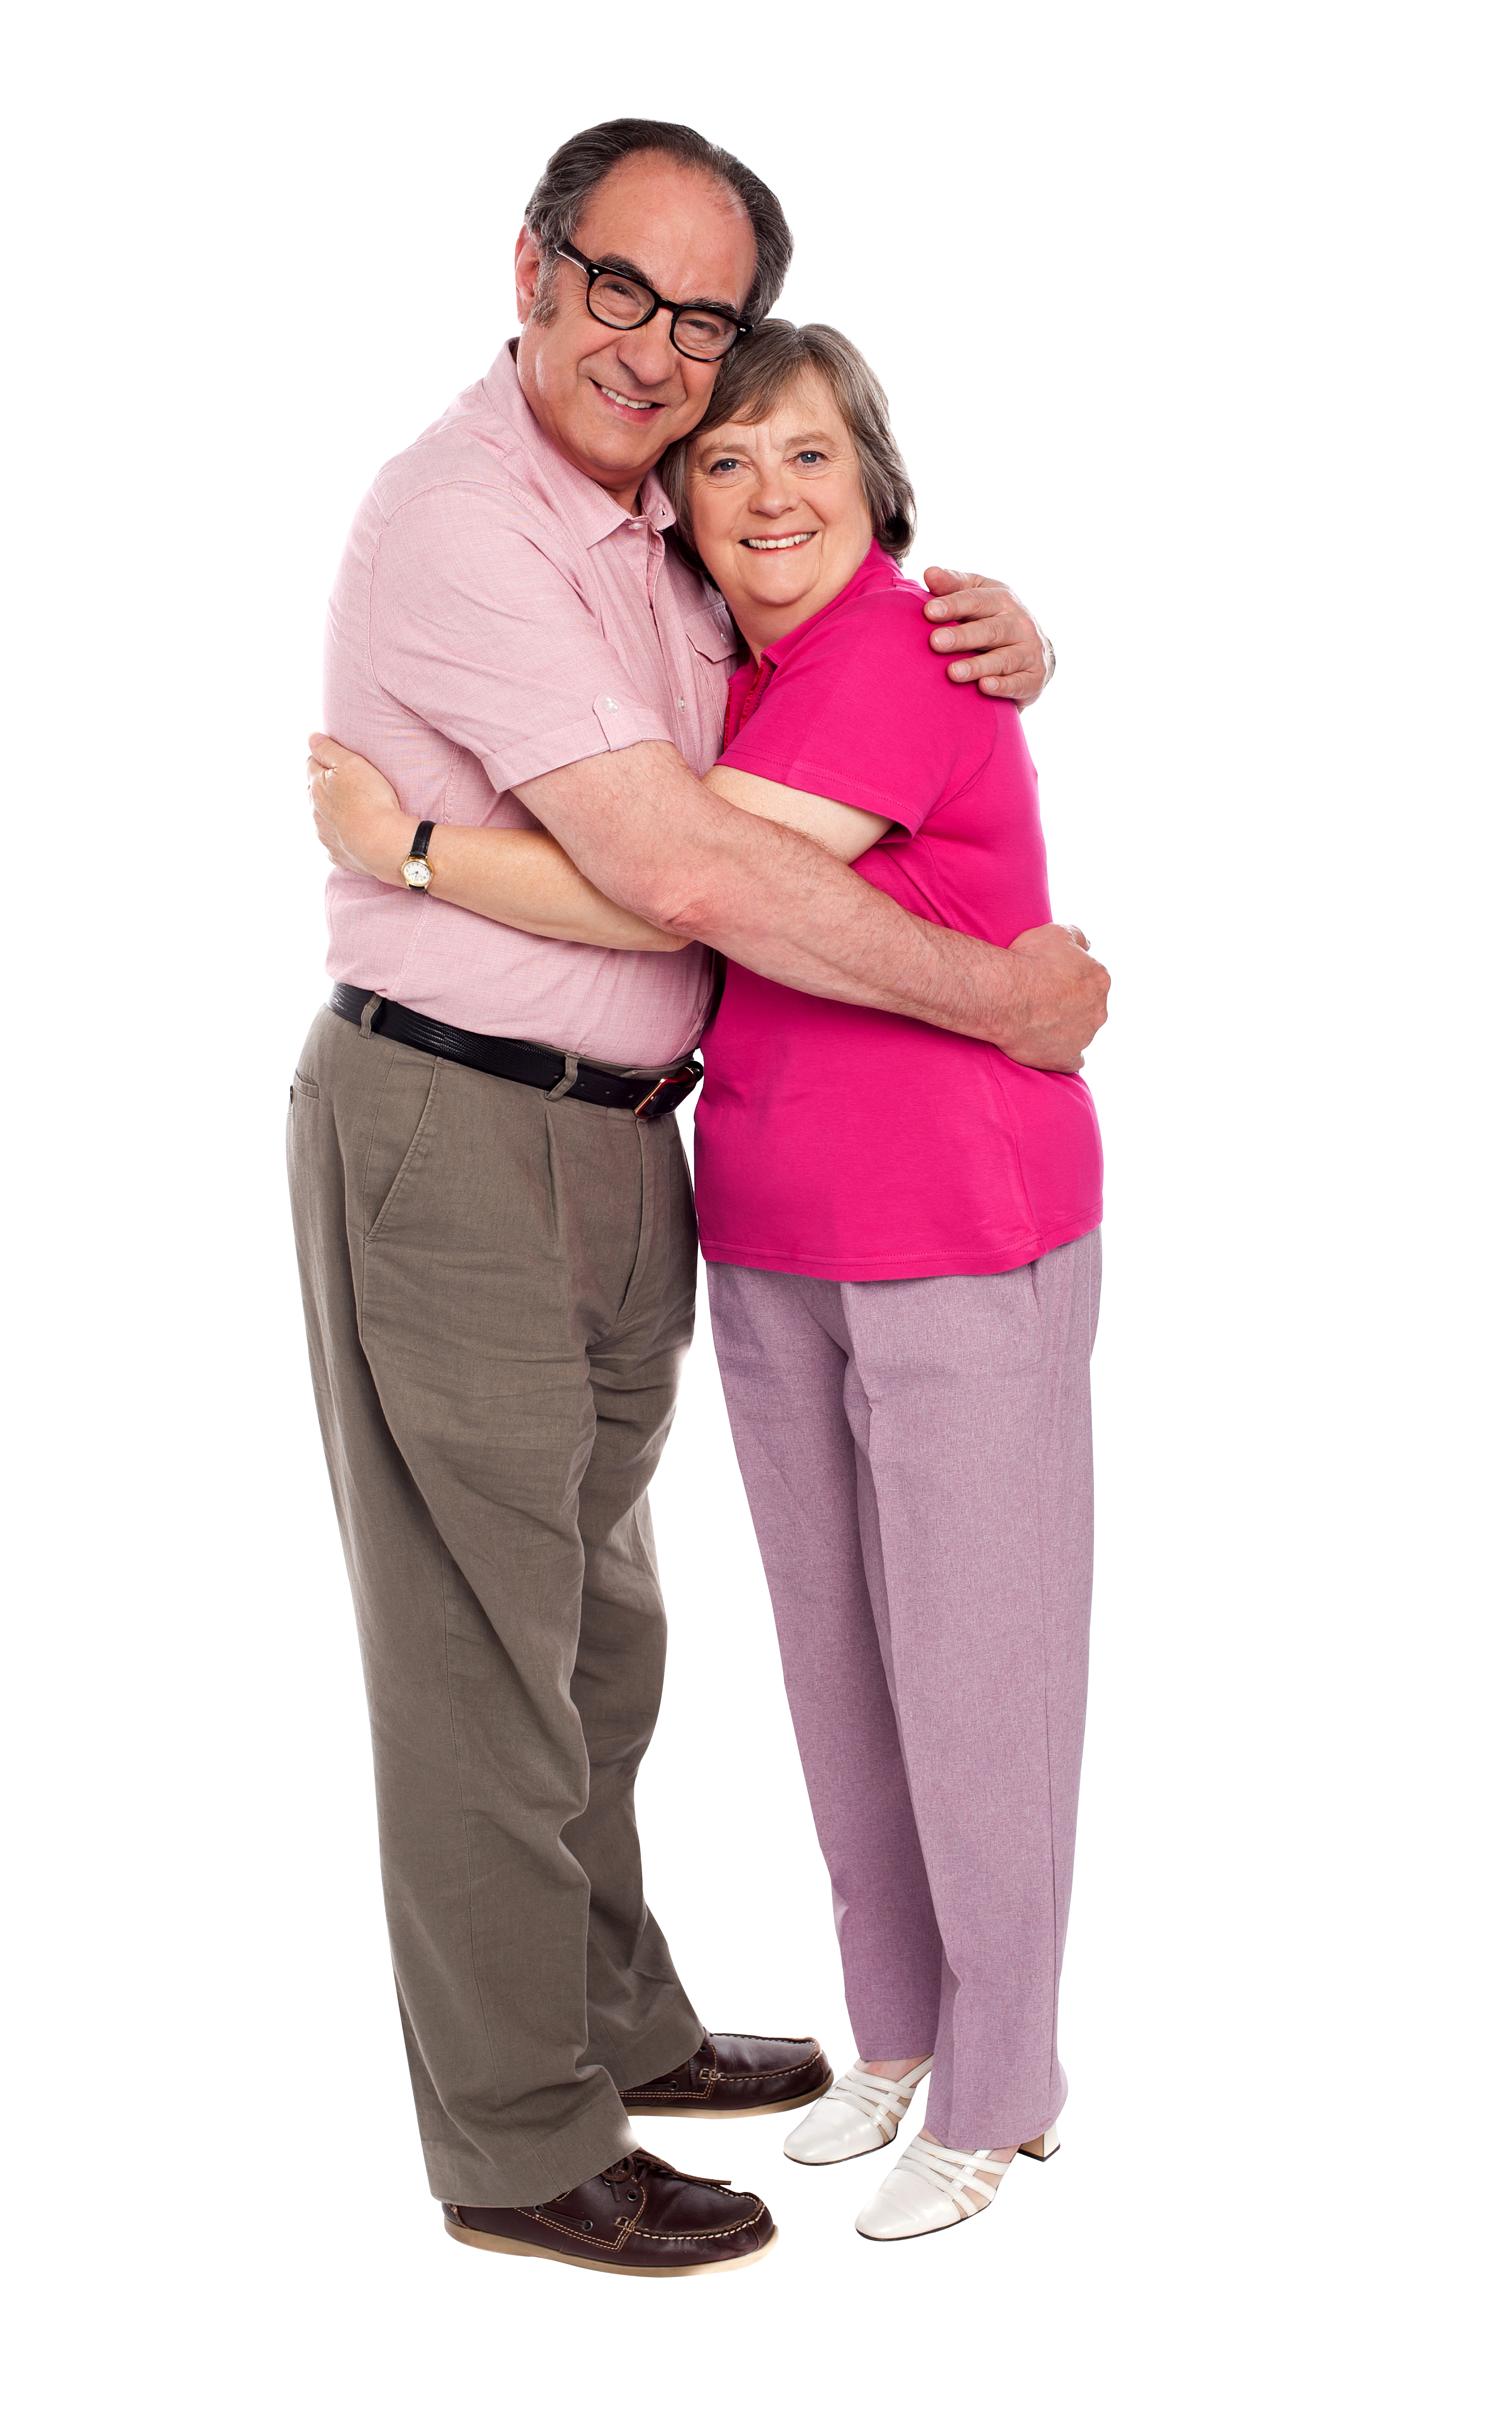 Old couple png. Image purepng free transparent